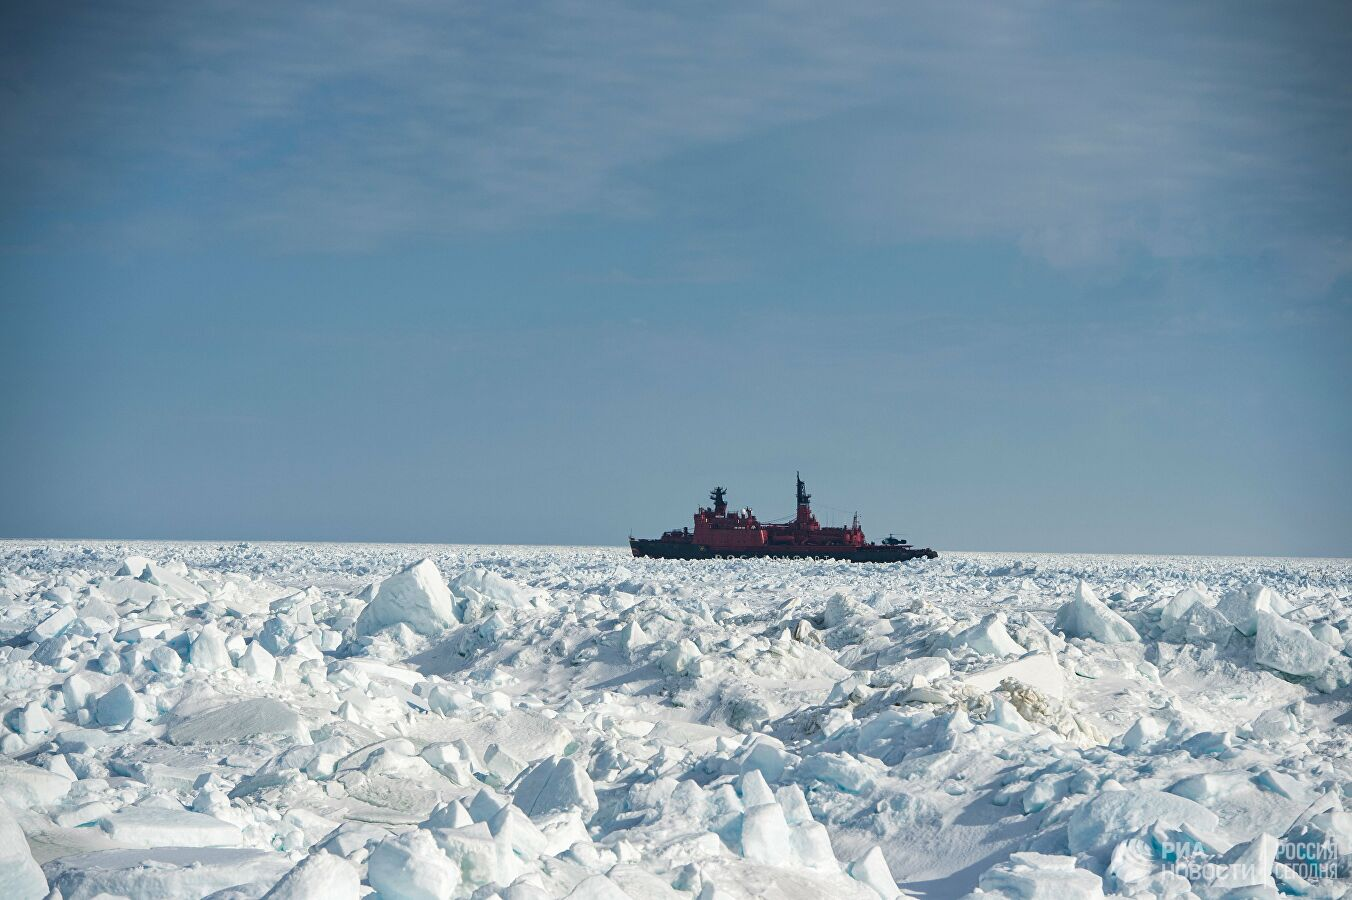 US New Arctic Strategy Is Aimed At Pressuring Russia